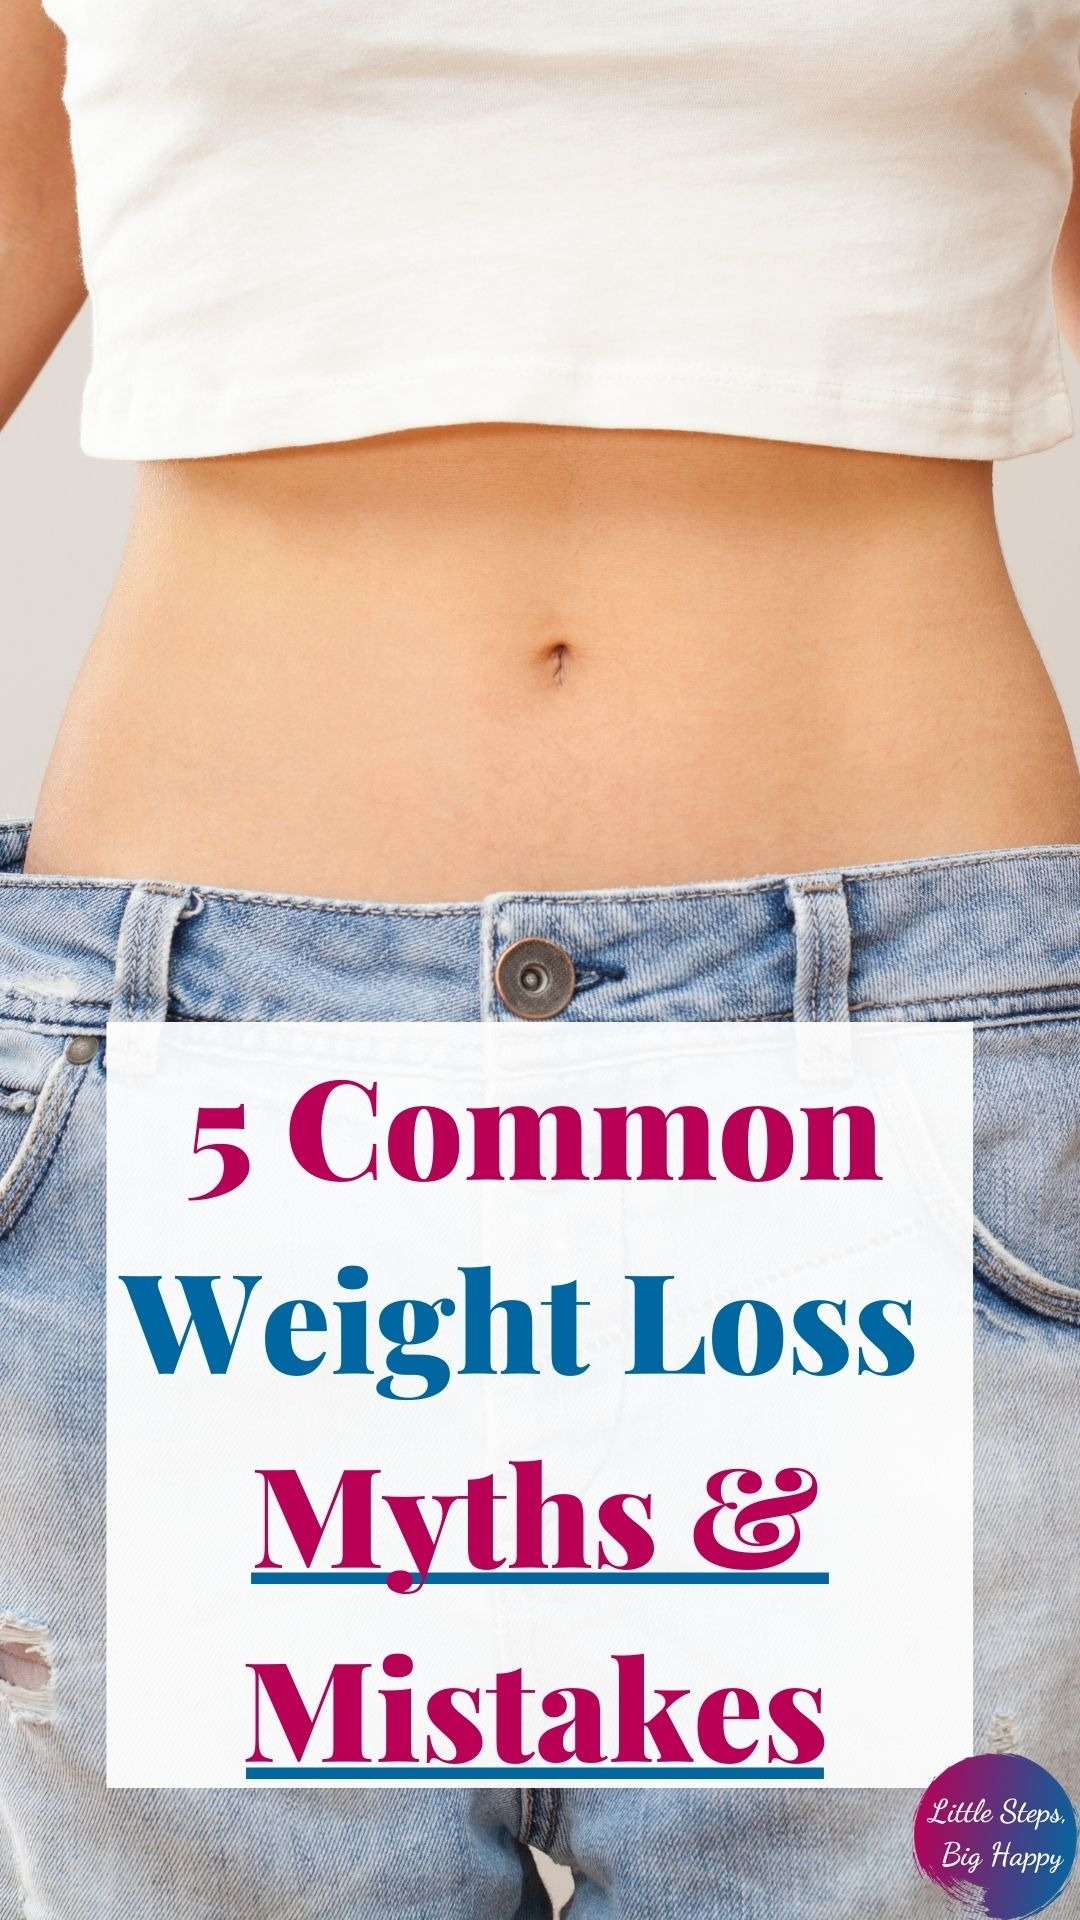 5 Common Weight Loss Myths & Mistakes